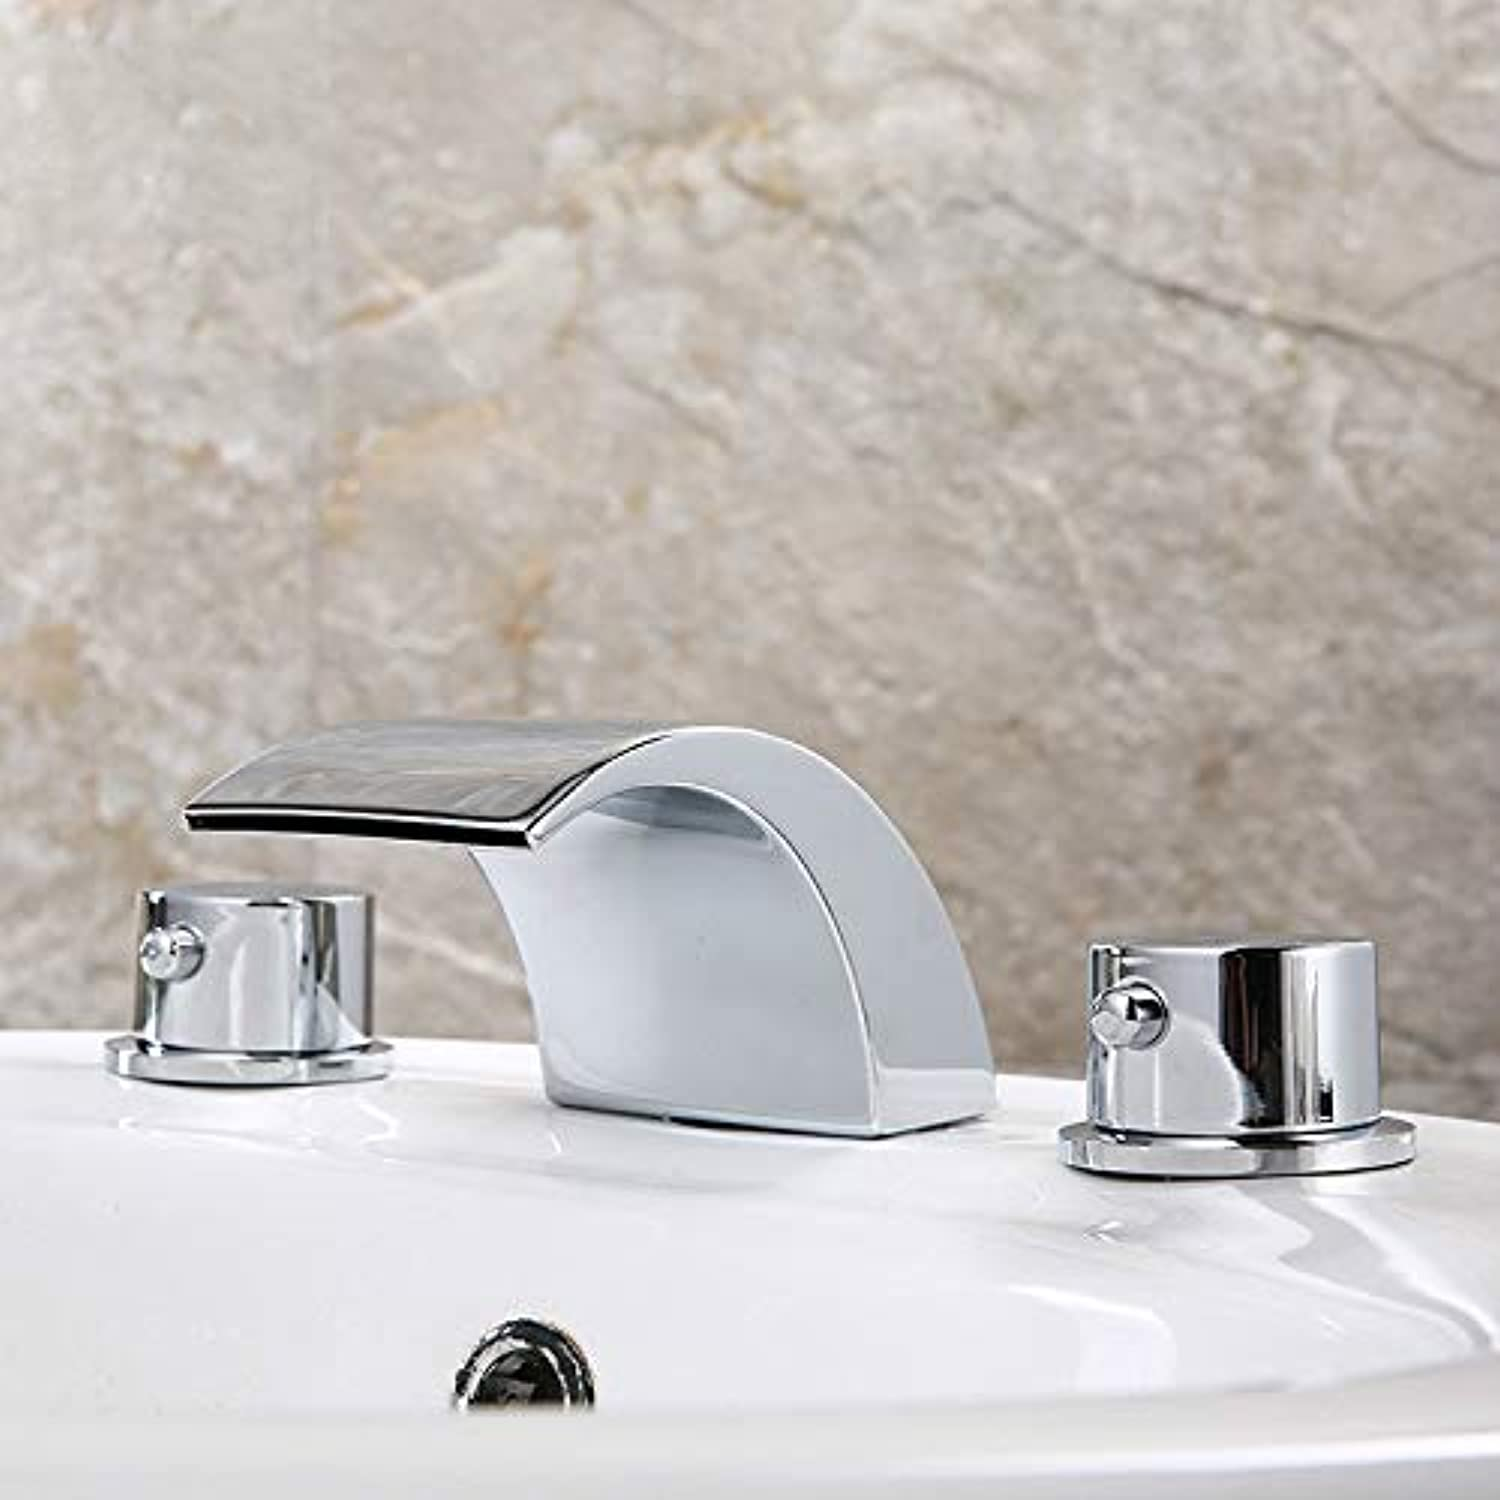 Bathroom Basin Faucet hot and Cold Water Mixing Faucet Waterfall Faucet